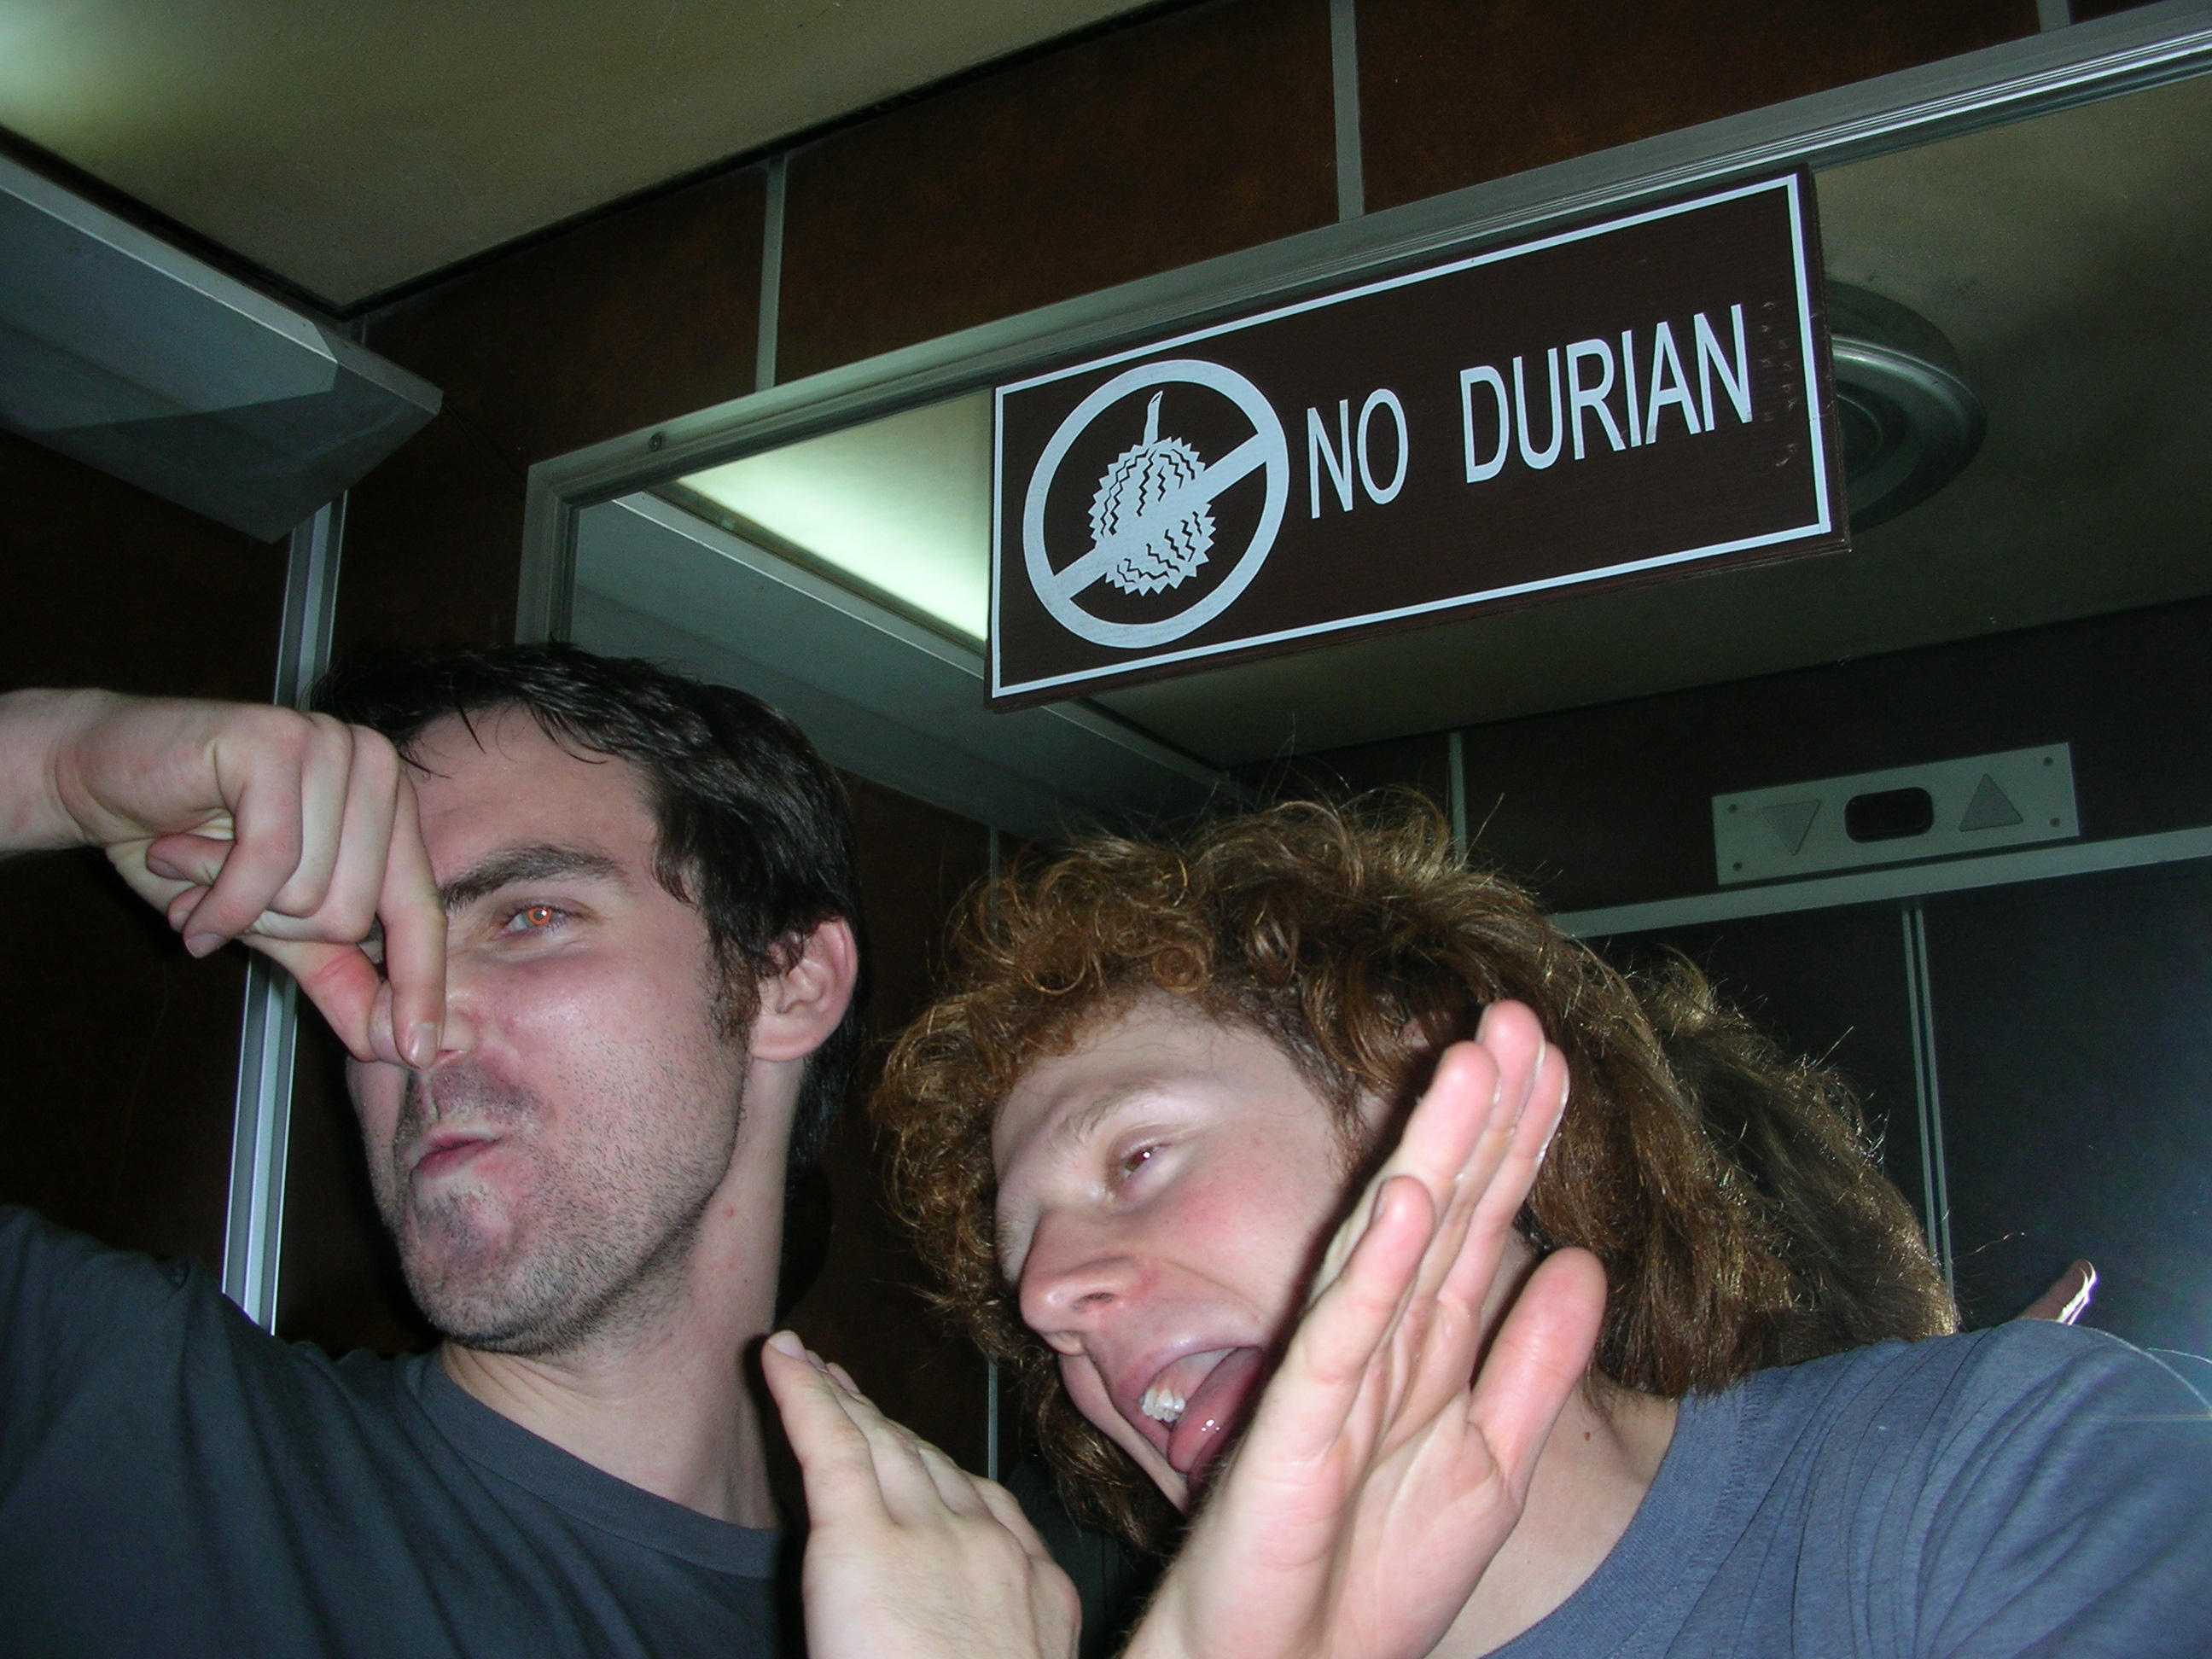 NO DURIAN IN THE ELEVATOR!!